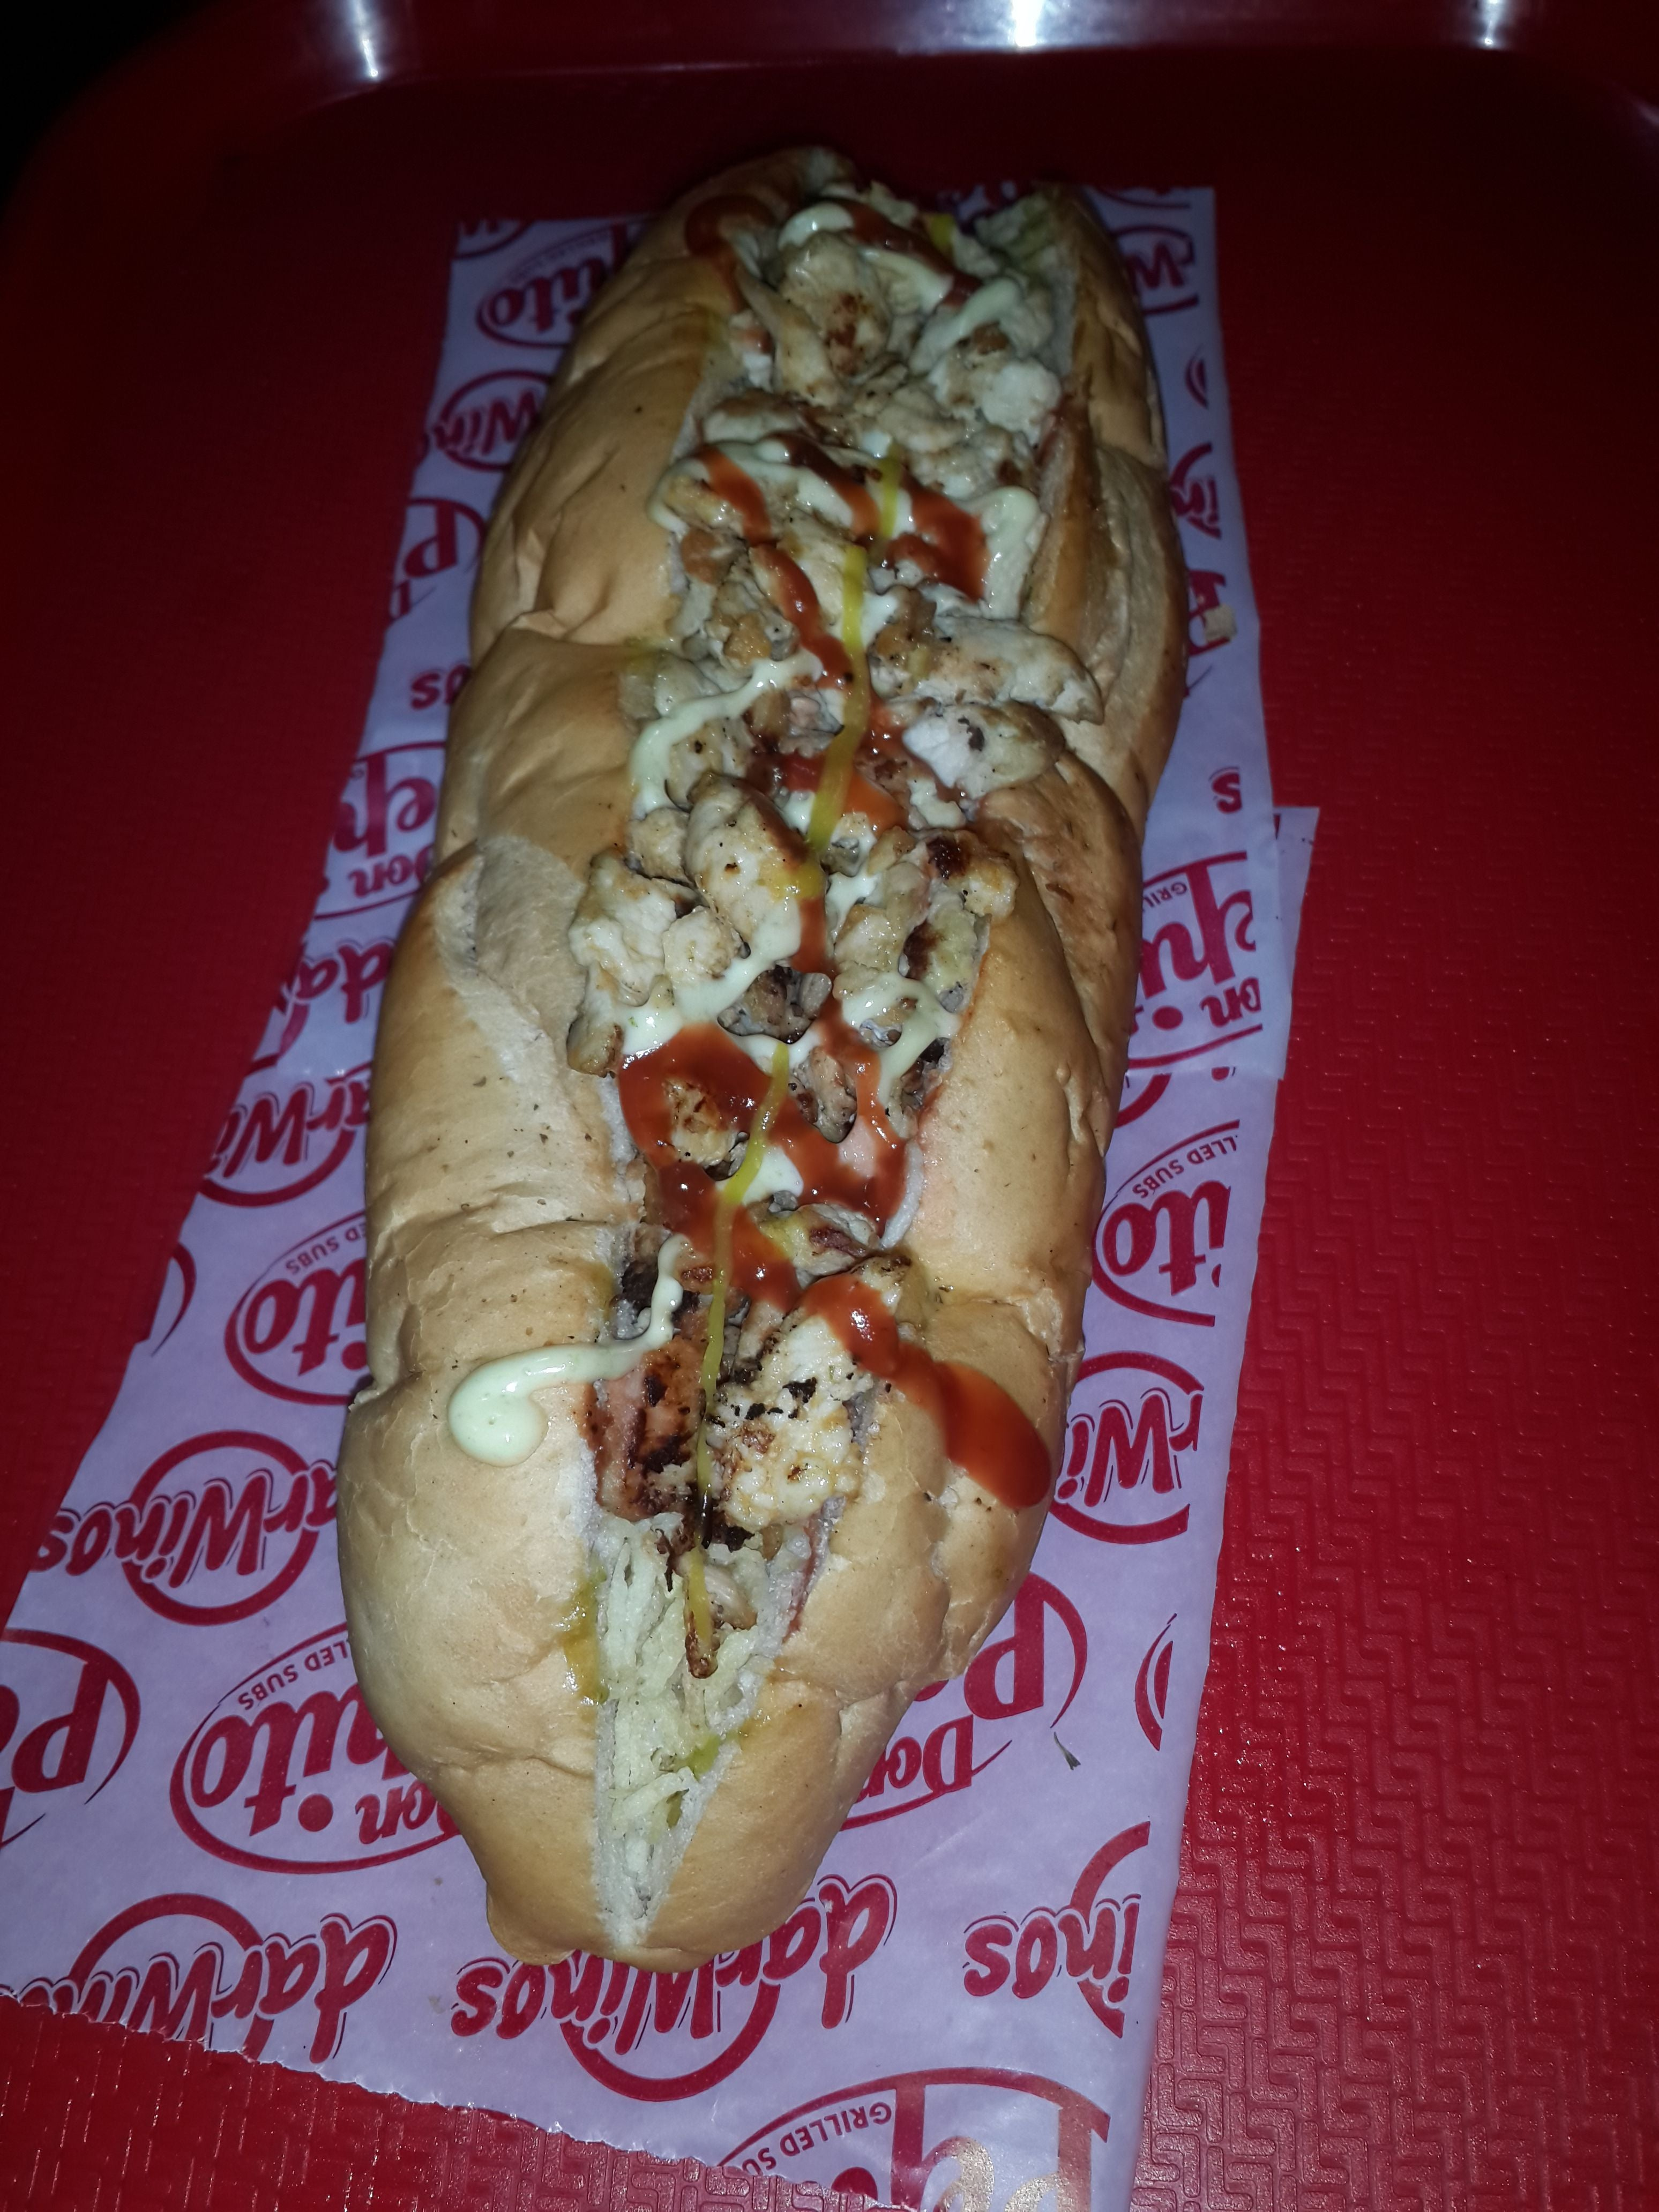 Meat in Don Pepito Grilled Subs